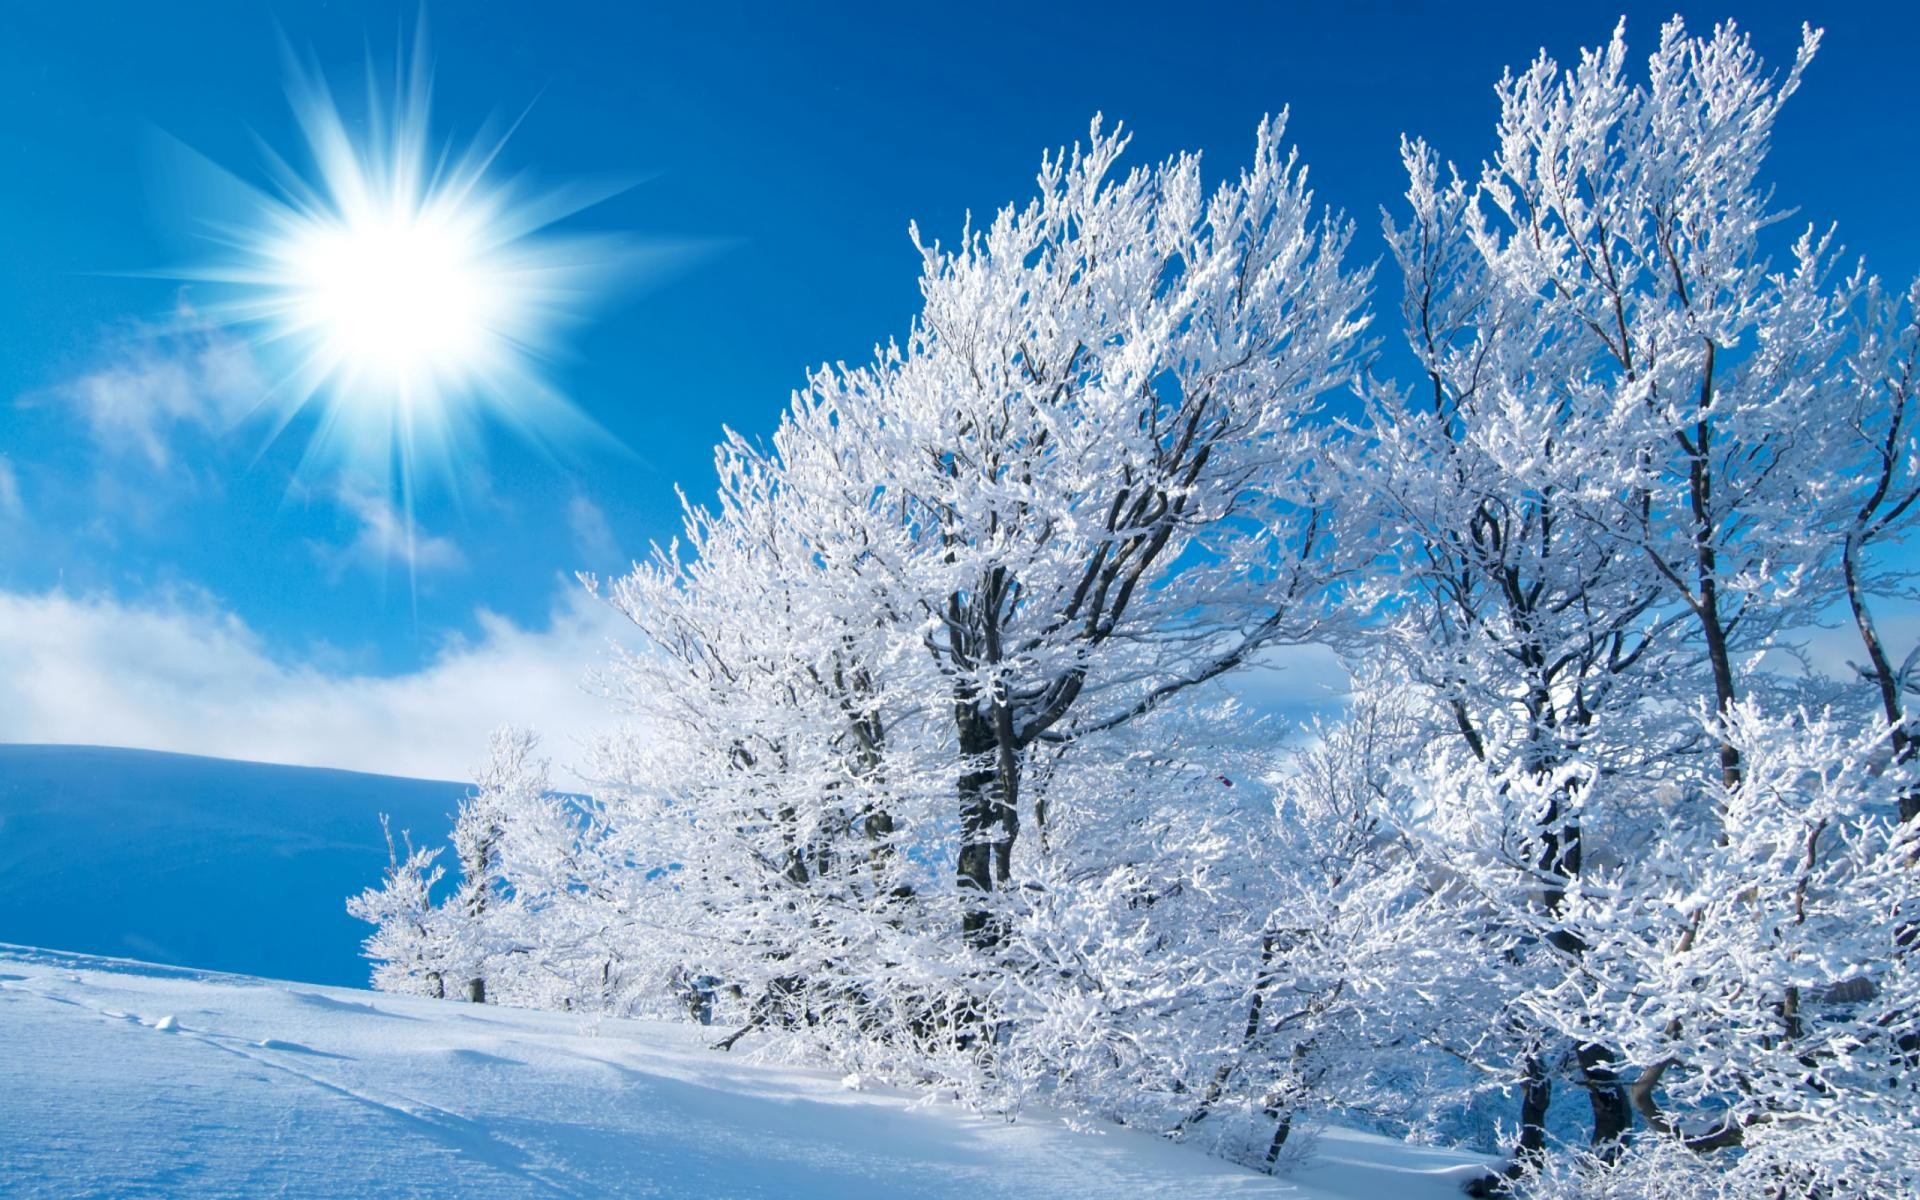 Sunny winter landscape wallpapers and images   wallpapers 1920x1200